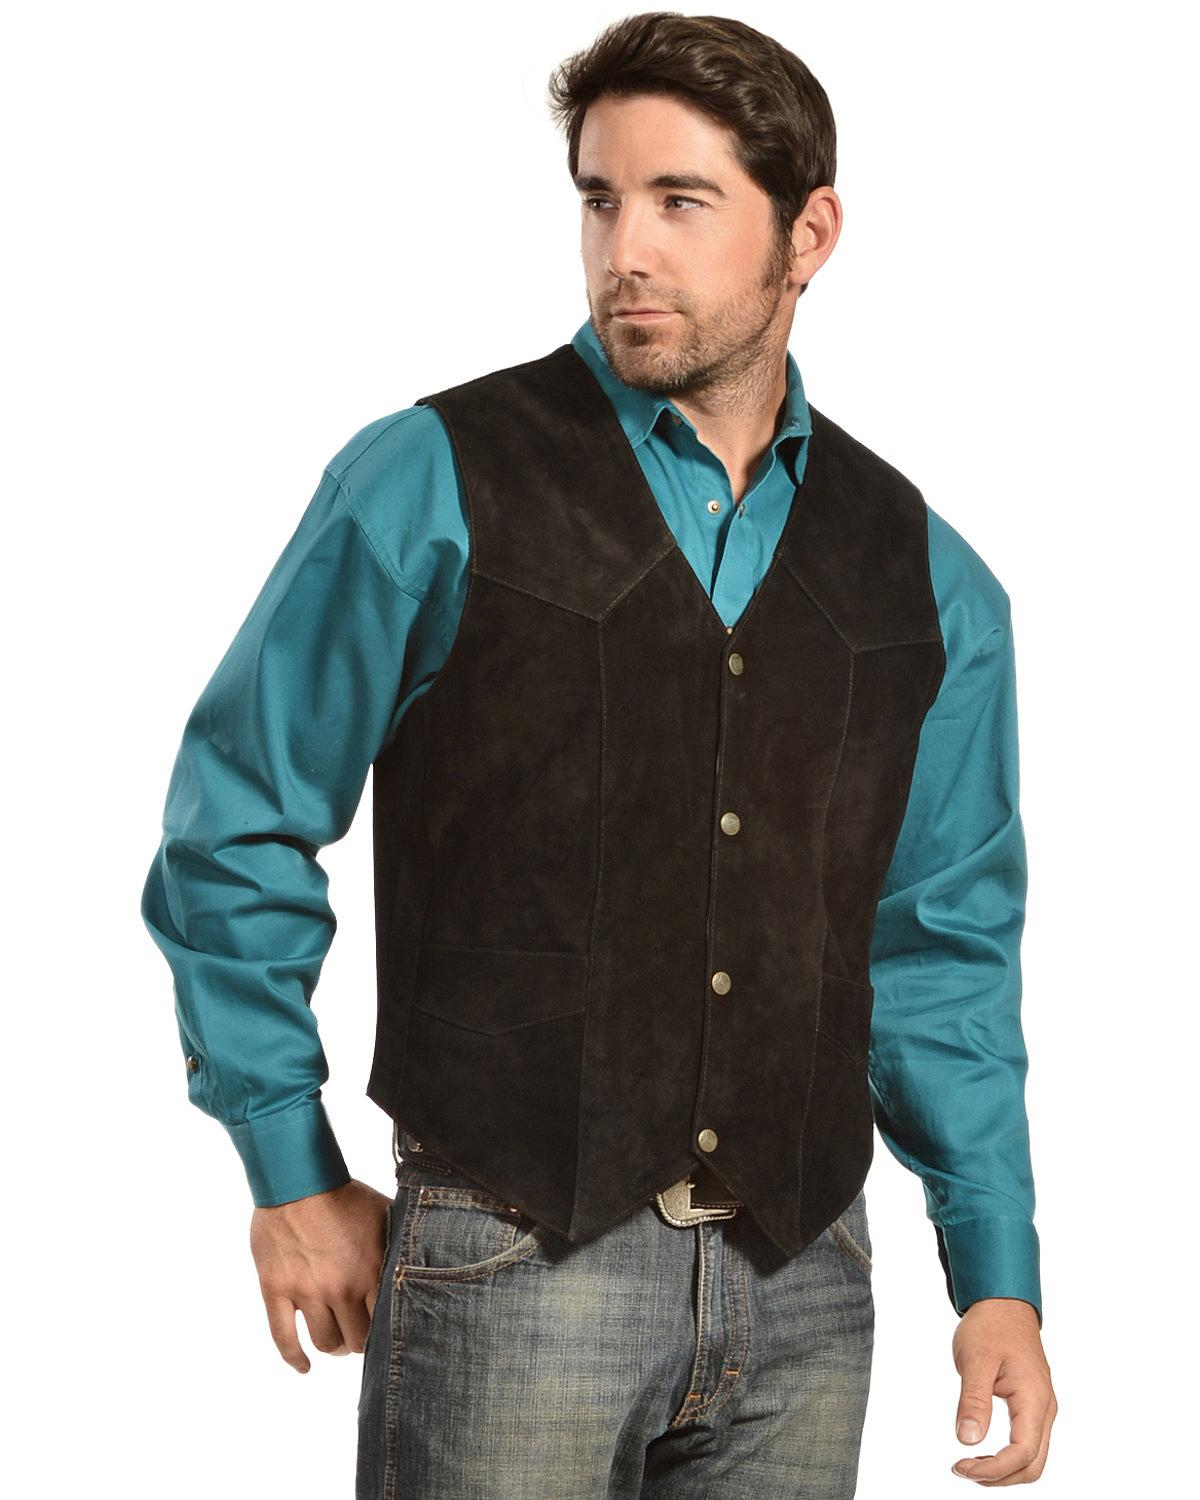 liberty men Free shipping on all orders over $100 my account men bibs & coveralls outerwear coats jackets vests rainwear.